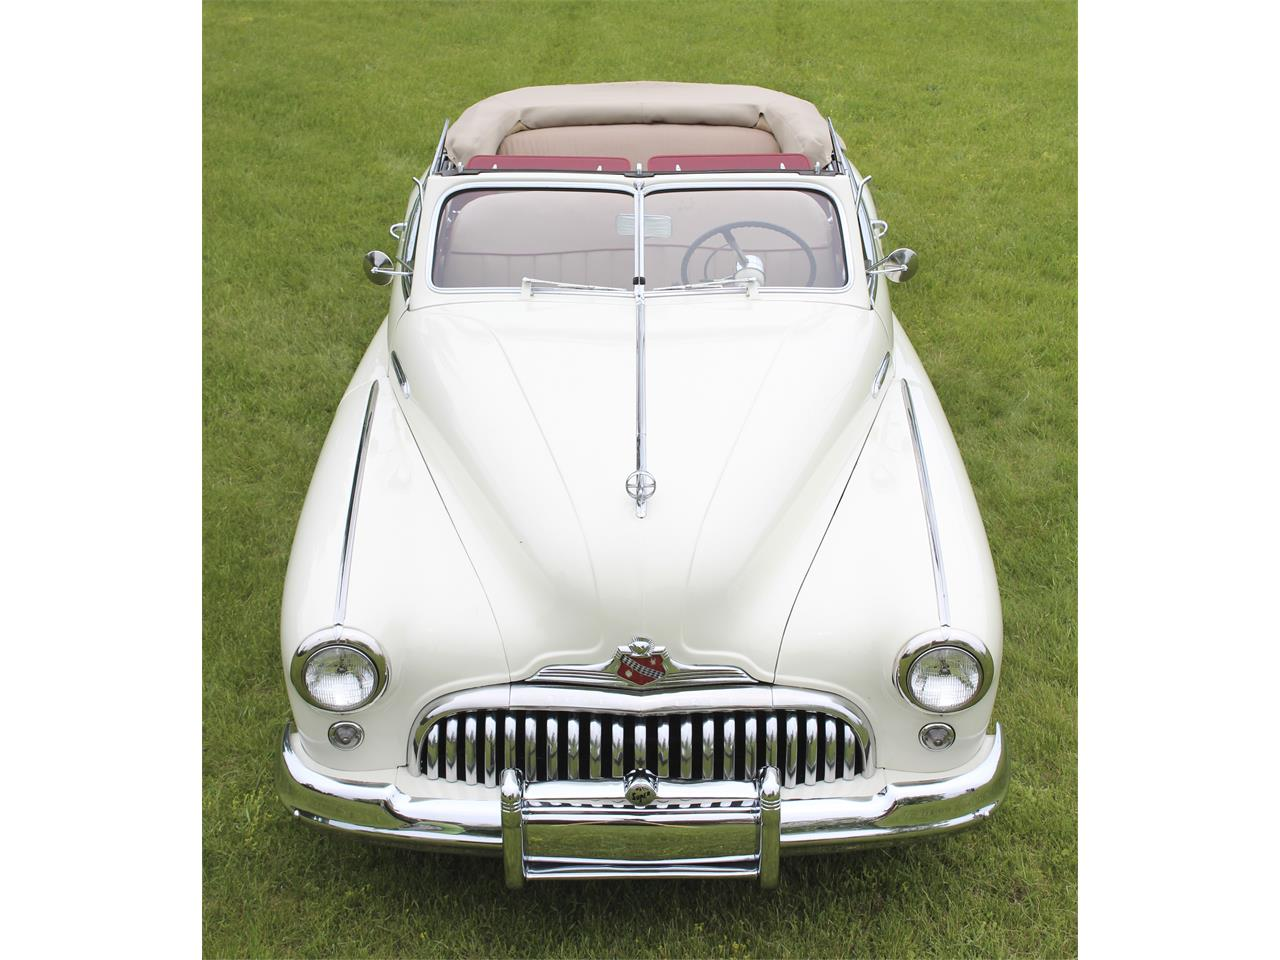 Large Picture of Classic 1948 Buick Convertible - $55,000.00 - QJJ6